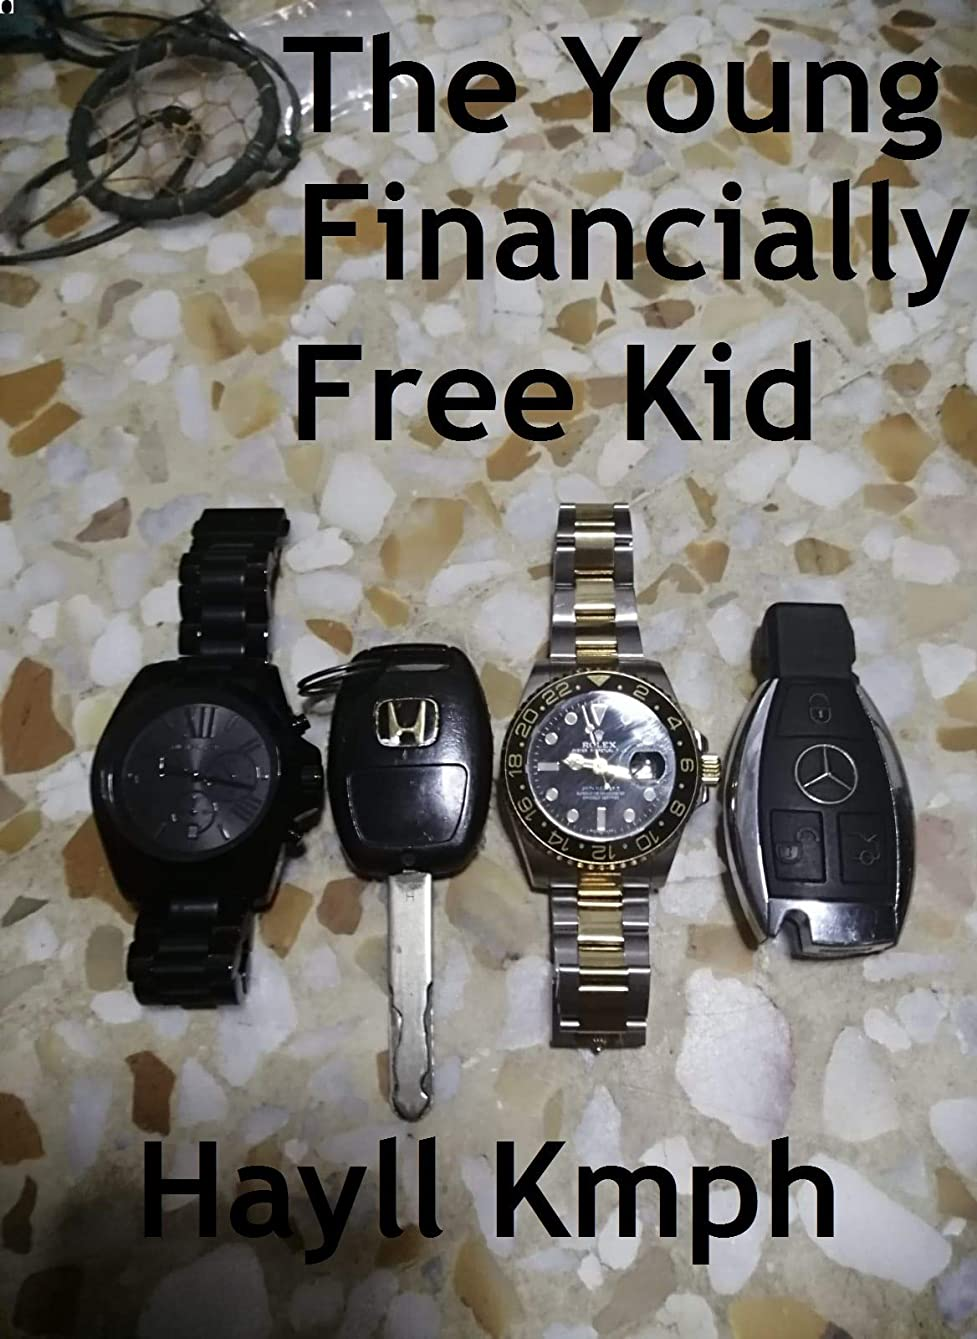 統合する旅行器官The Young Financially Free Kid (English Edition)